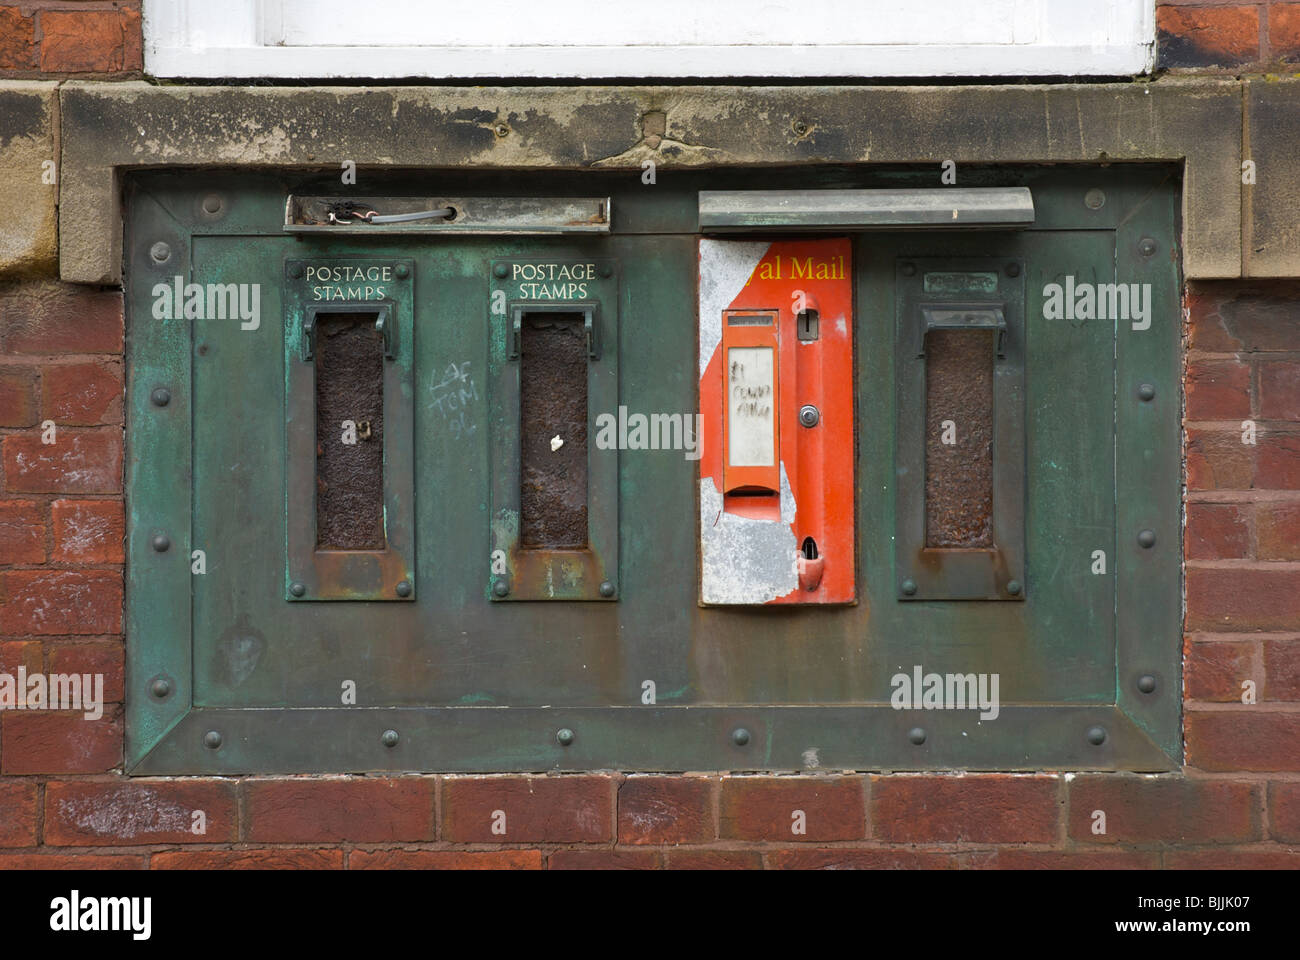 Old stamp dispensing machine in wall of Post Office, Maryport, West Cumbria, England UK - Stock Image